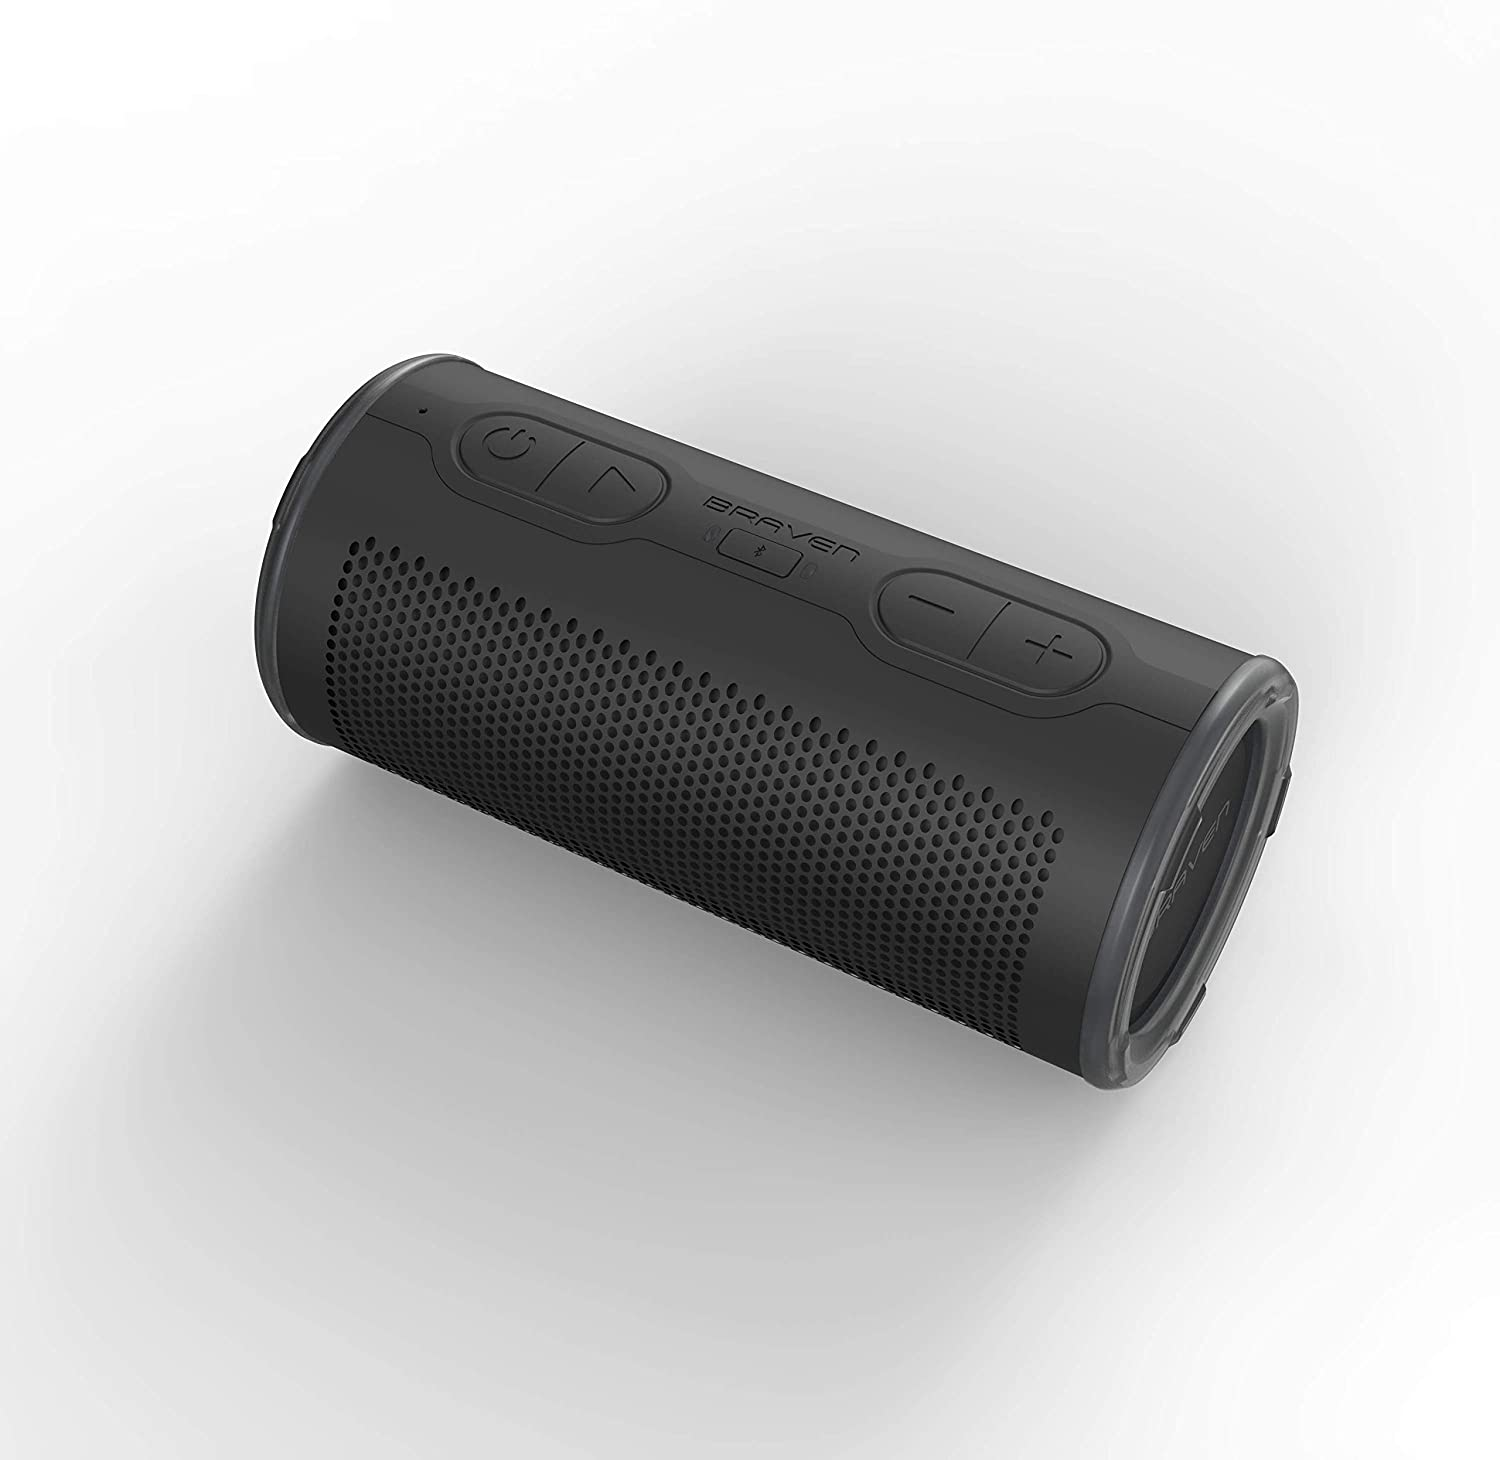 Black Braven BRV-360 360 Degree Speaker Bluetooth Wireless Technology Waterproof Portable Speaker